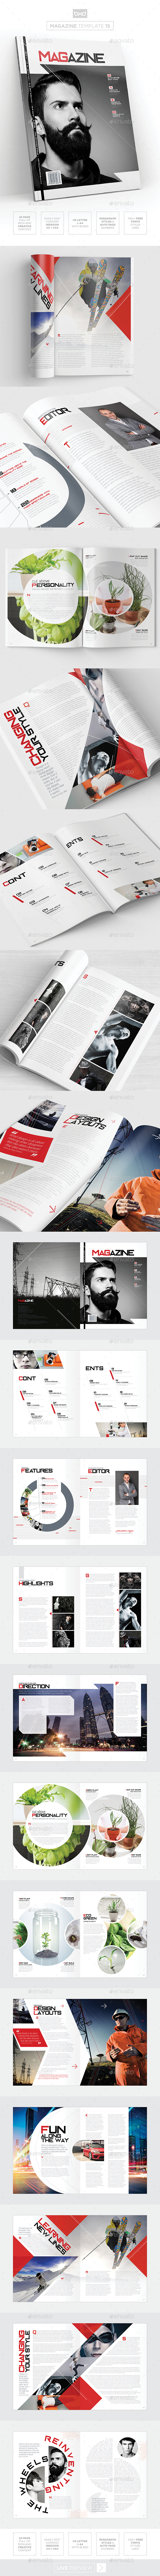 Magazine Template - InDesign 24 Page Layout V15 - Magazines Print Templates